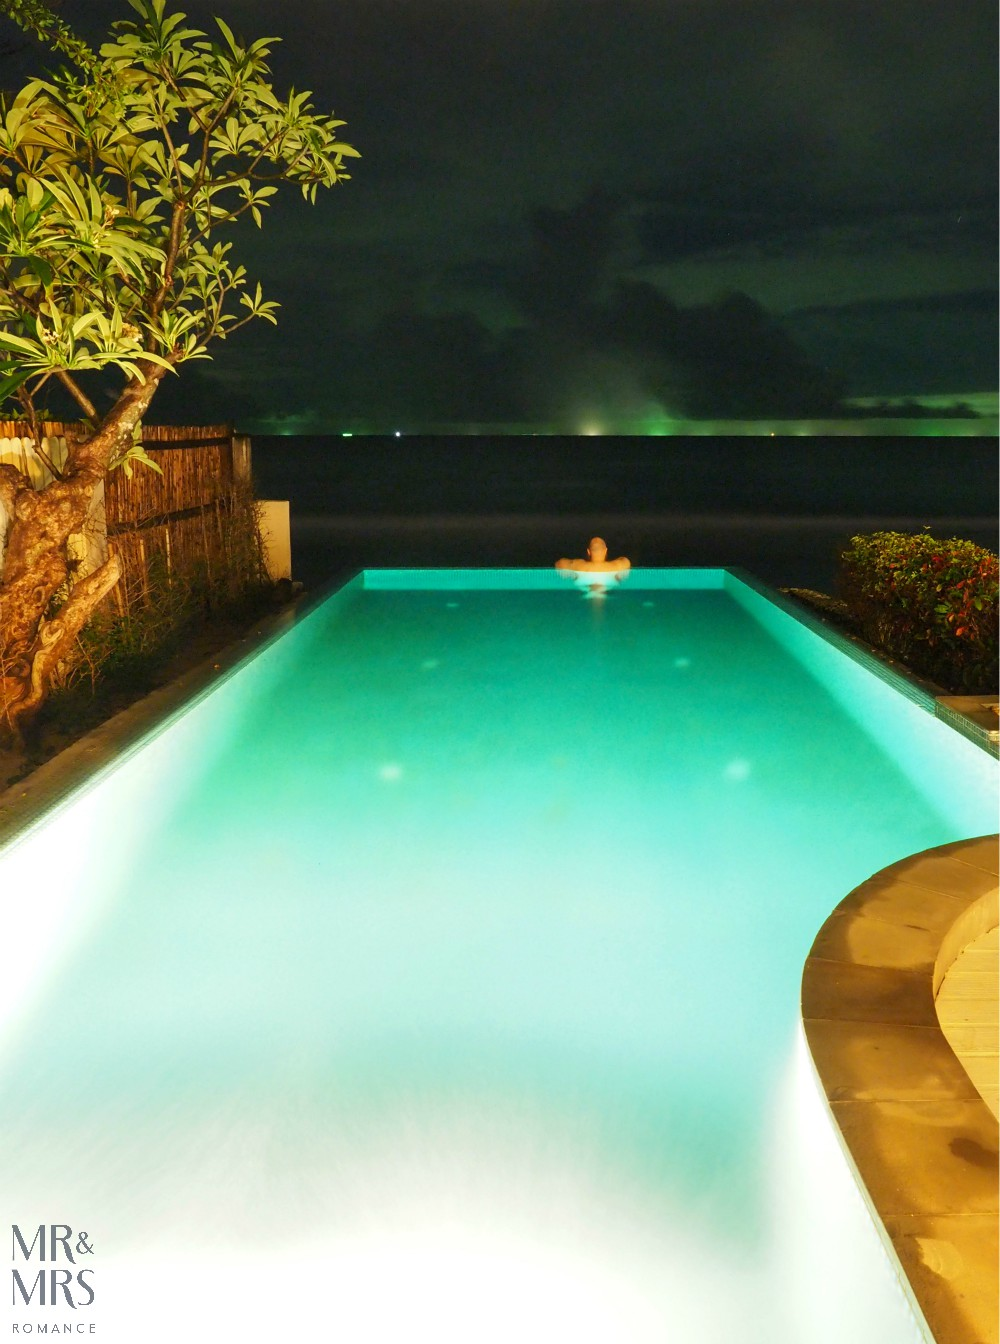 Bucket list hotel pools - Aleenta Hua Hin, Thailand